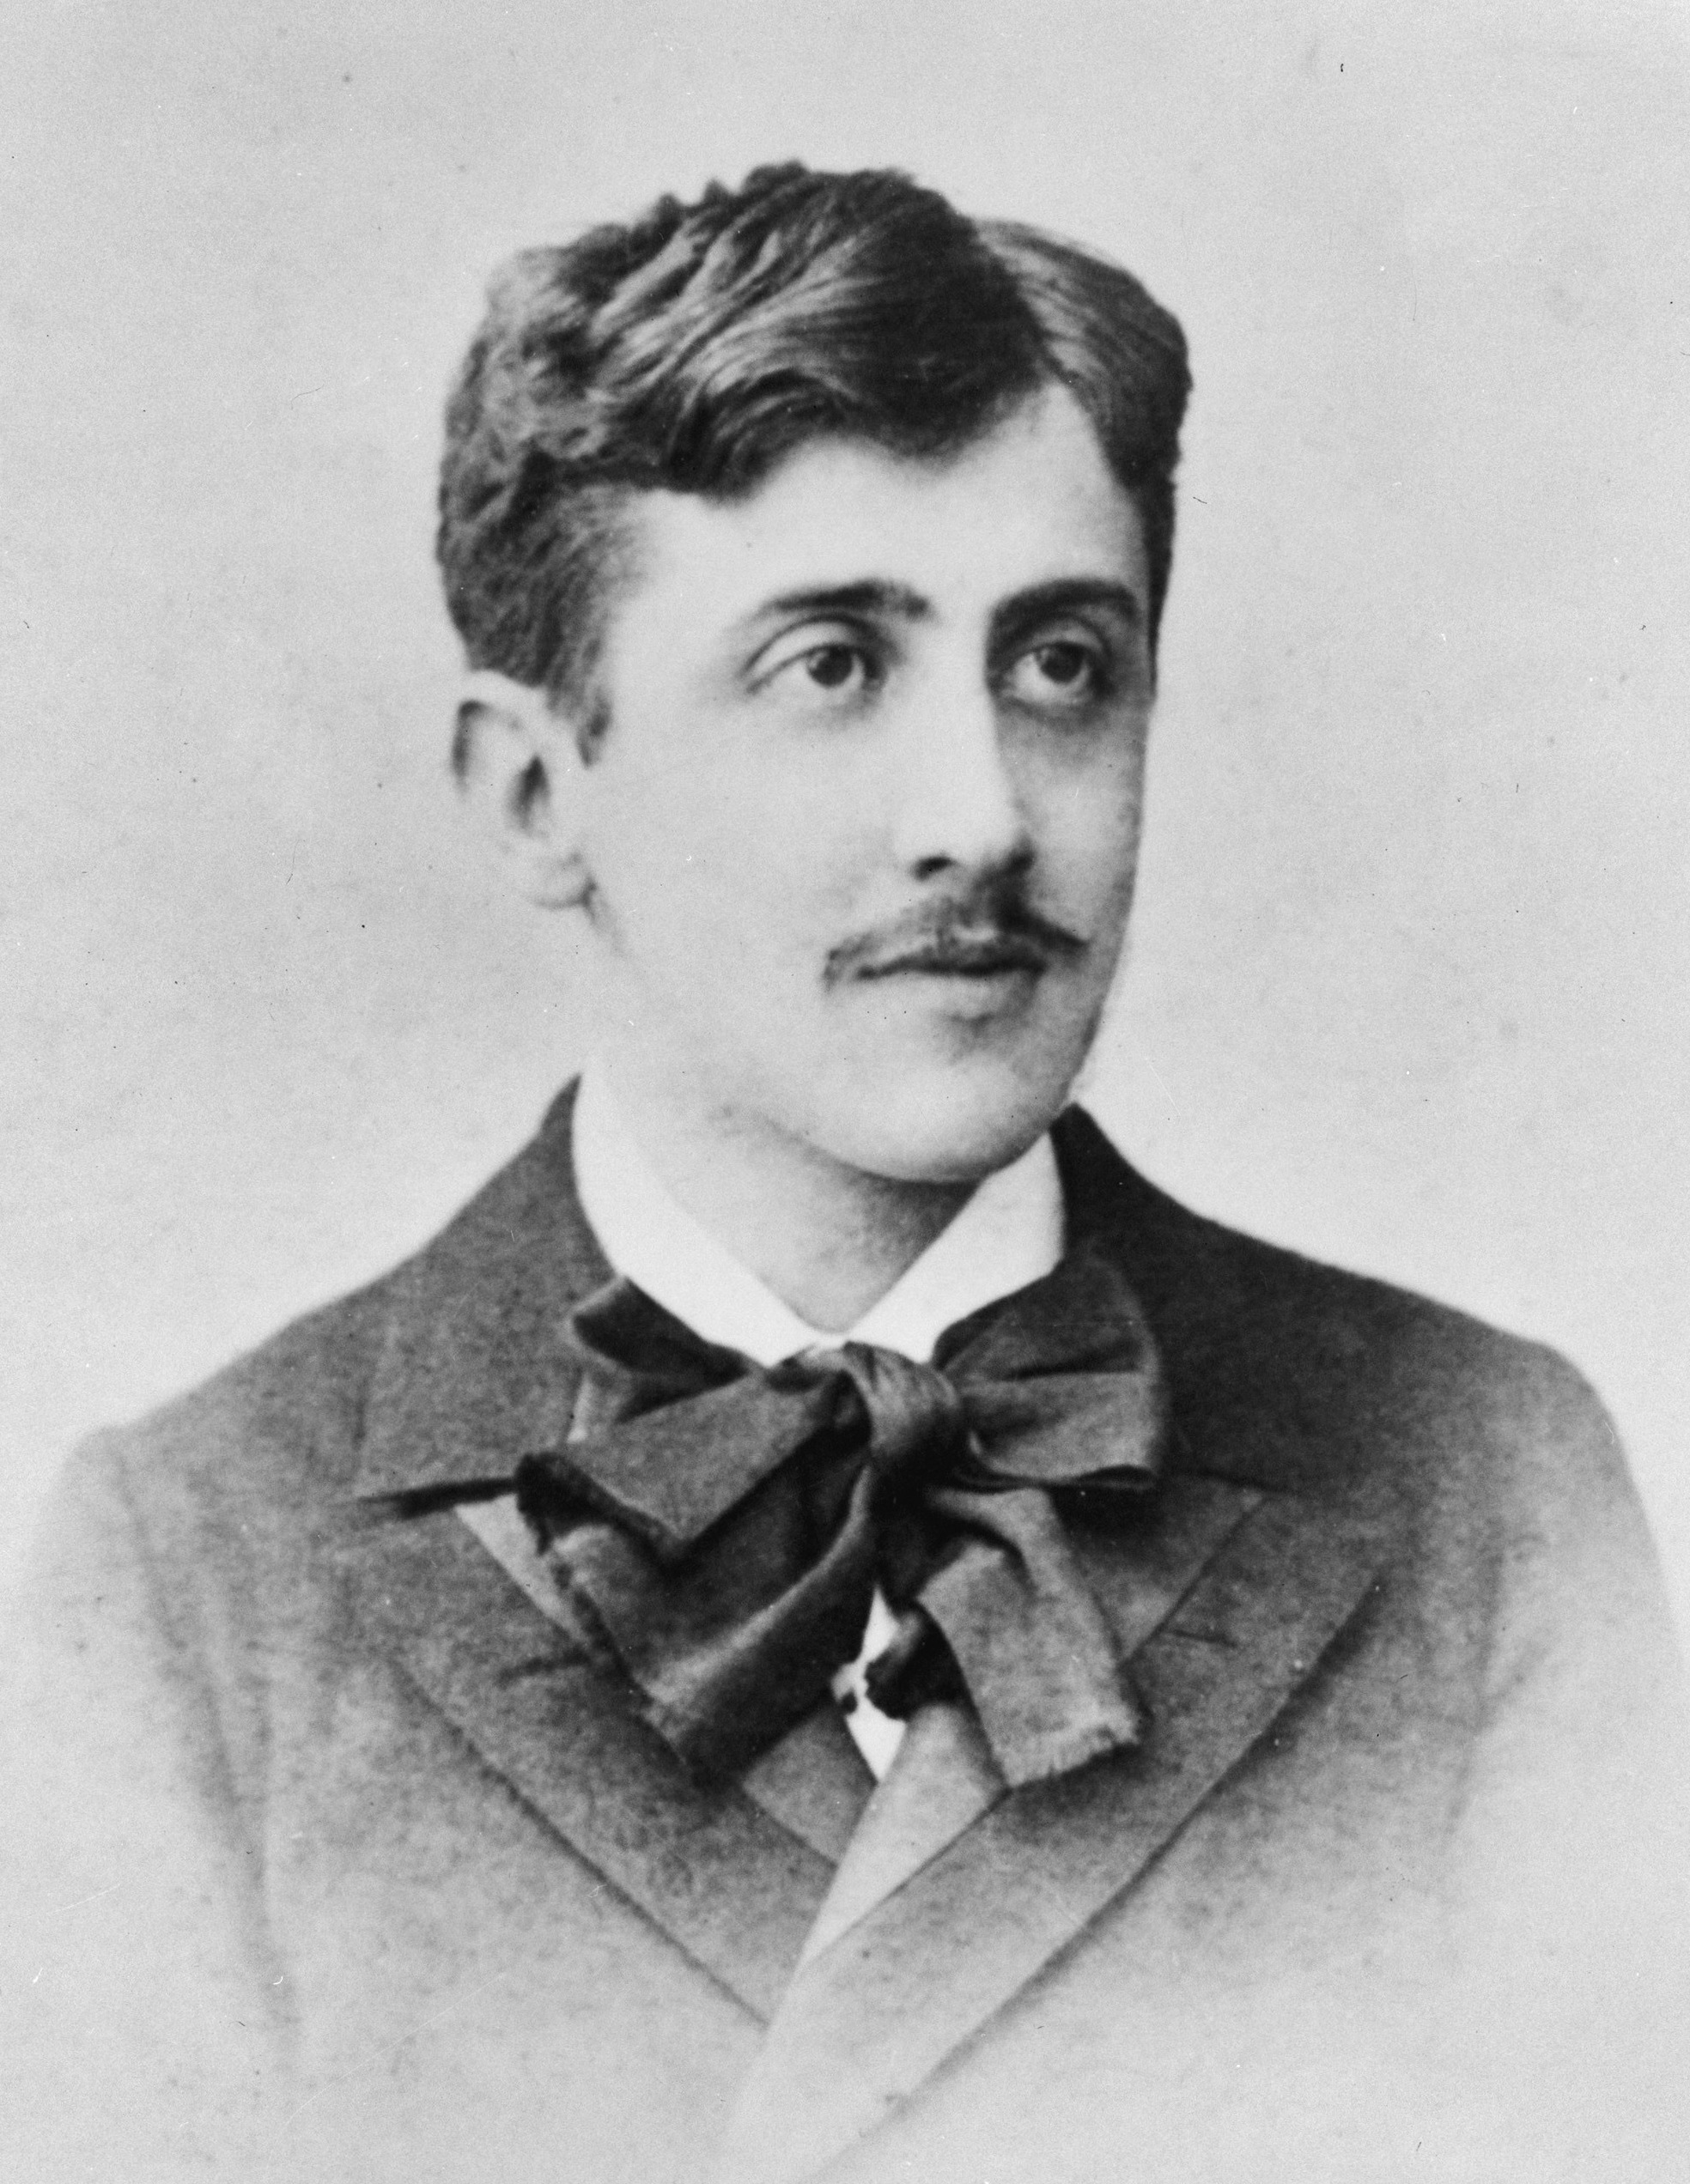 https://upload.wikimedia.org/wikipedia/commons/0/06/Marcel_Proust_2.jpg